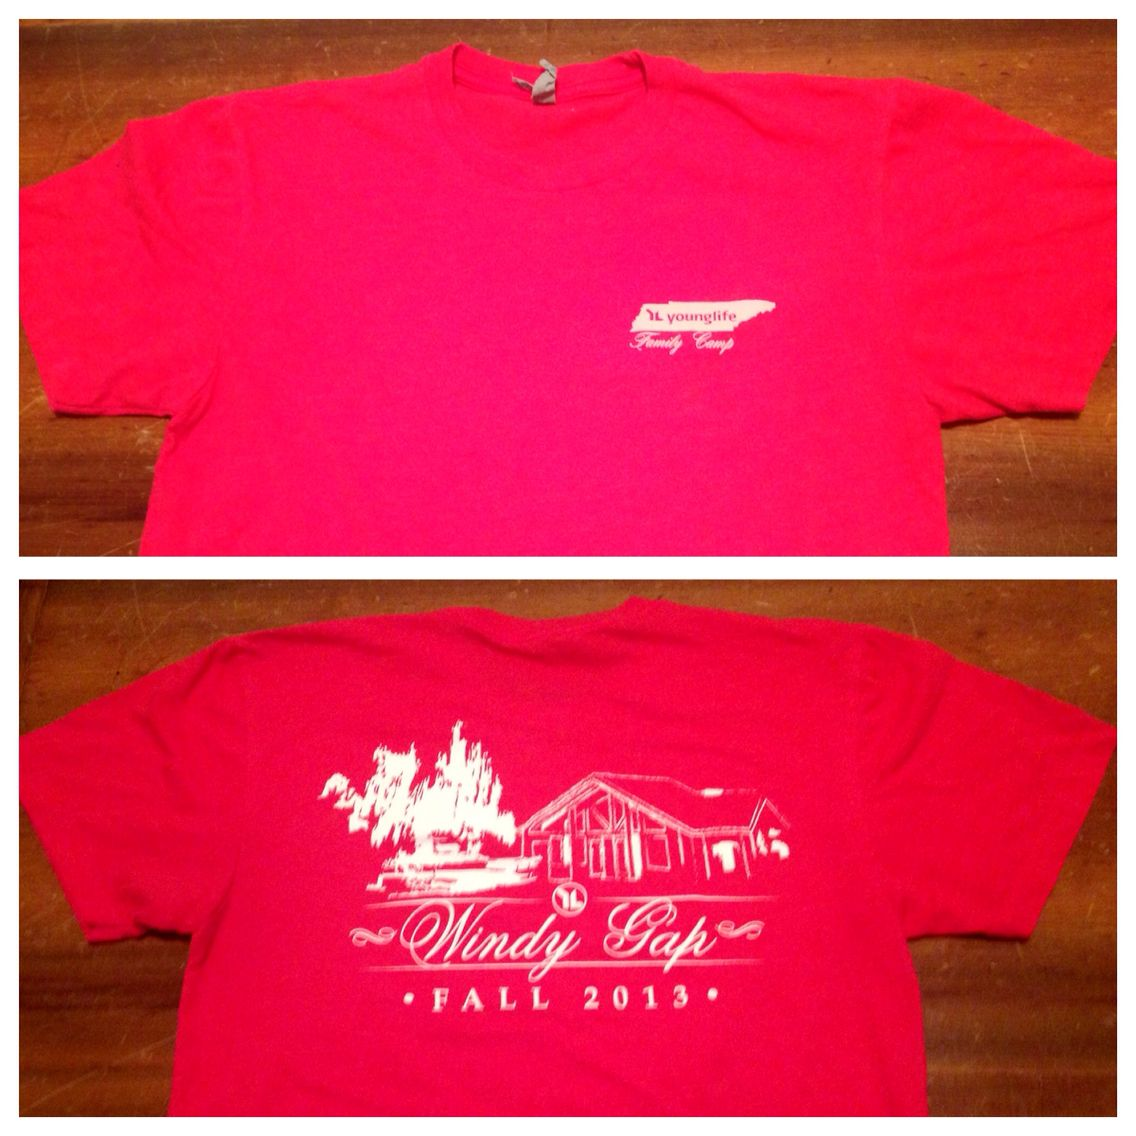 Young Life Family camp shirt for Windy Gap! I Enjoyed doing work